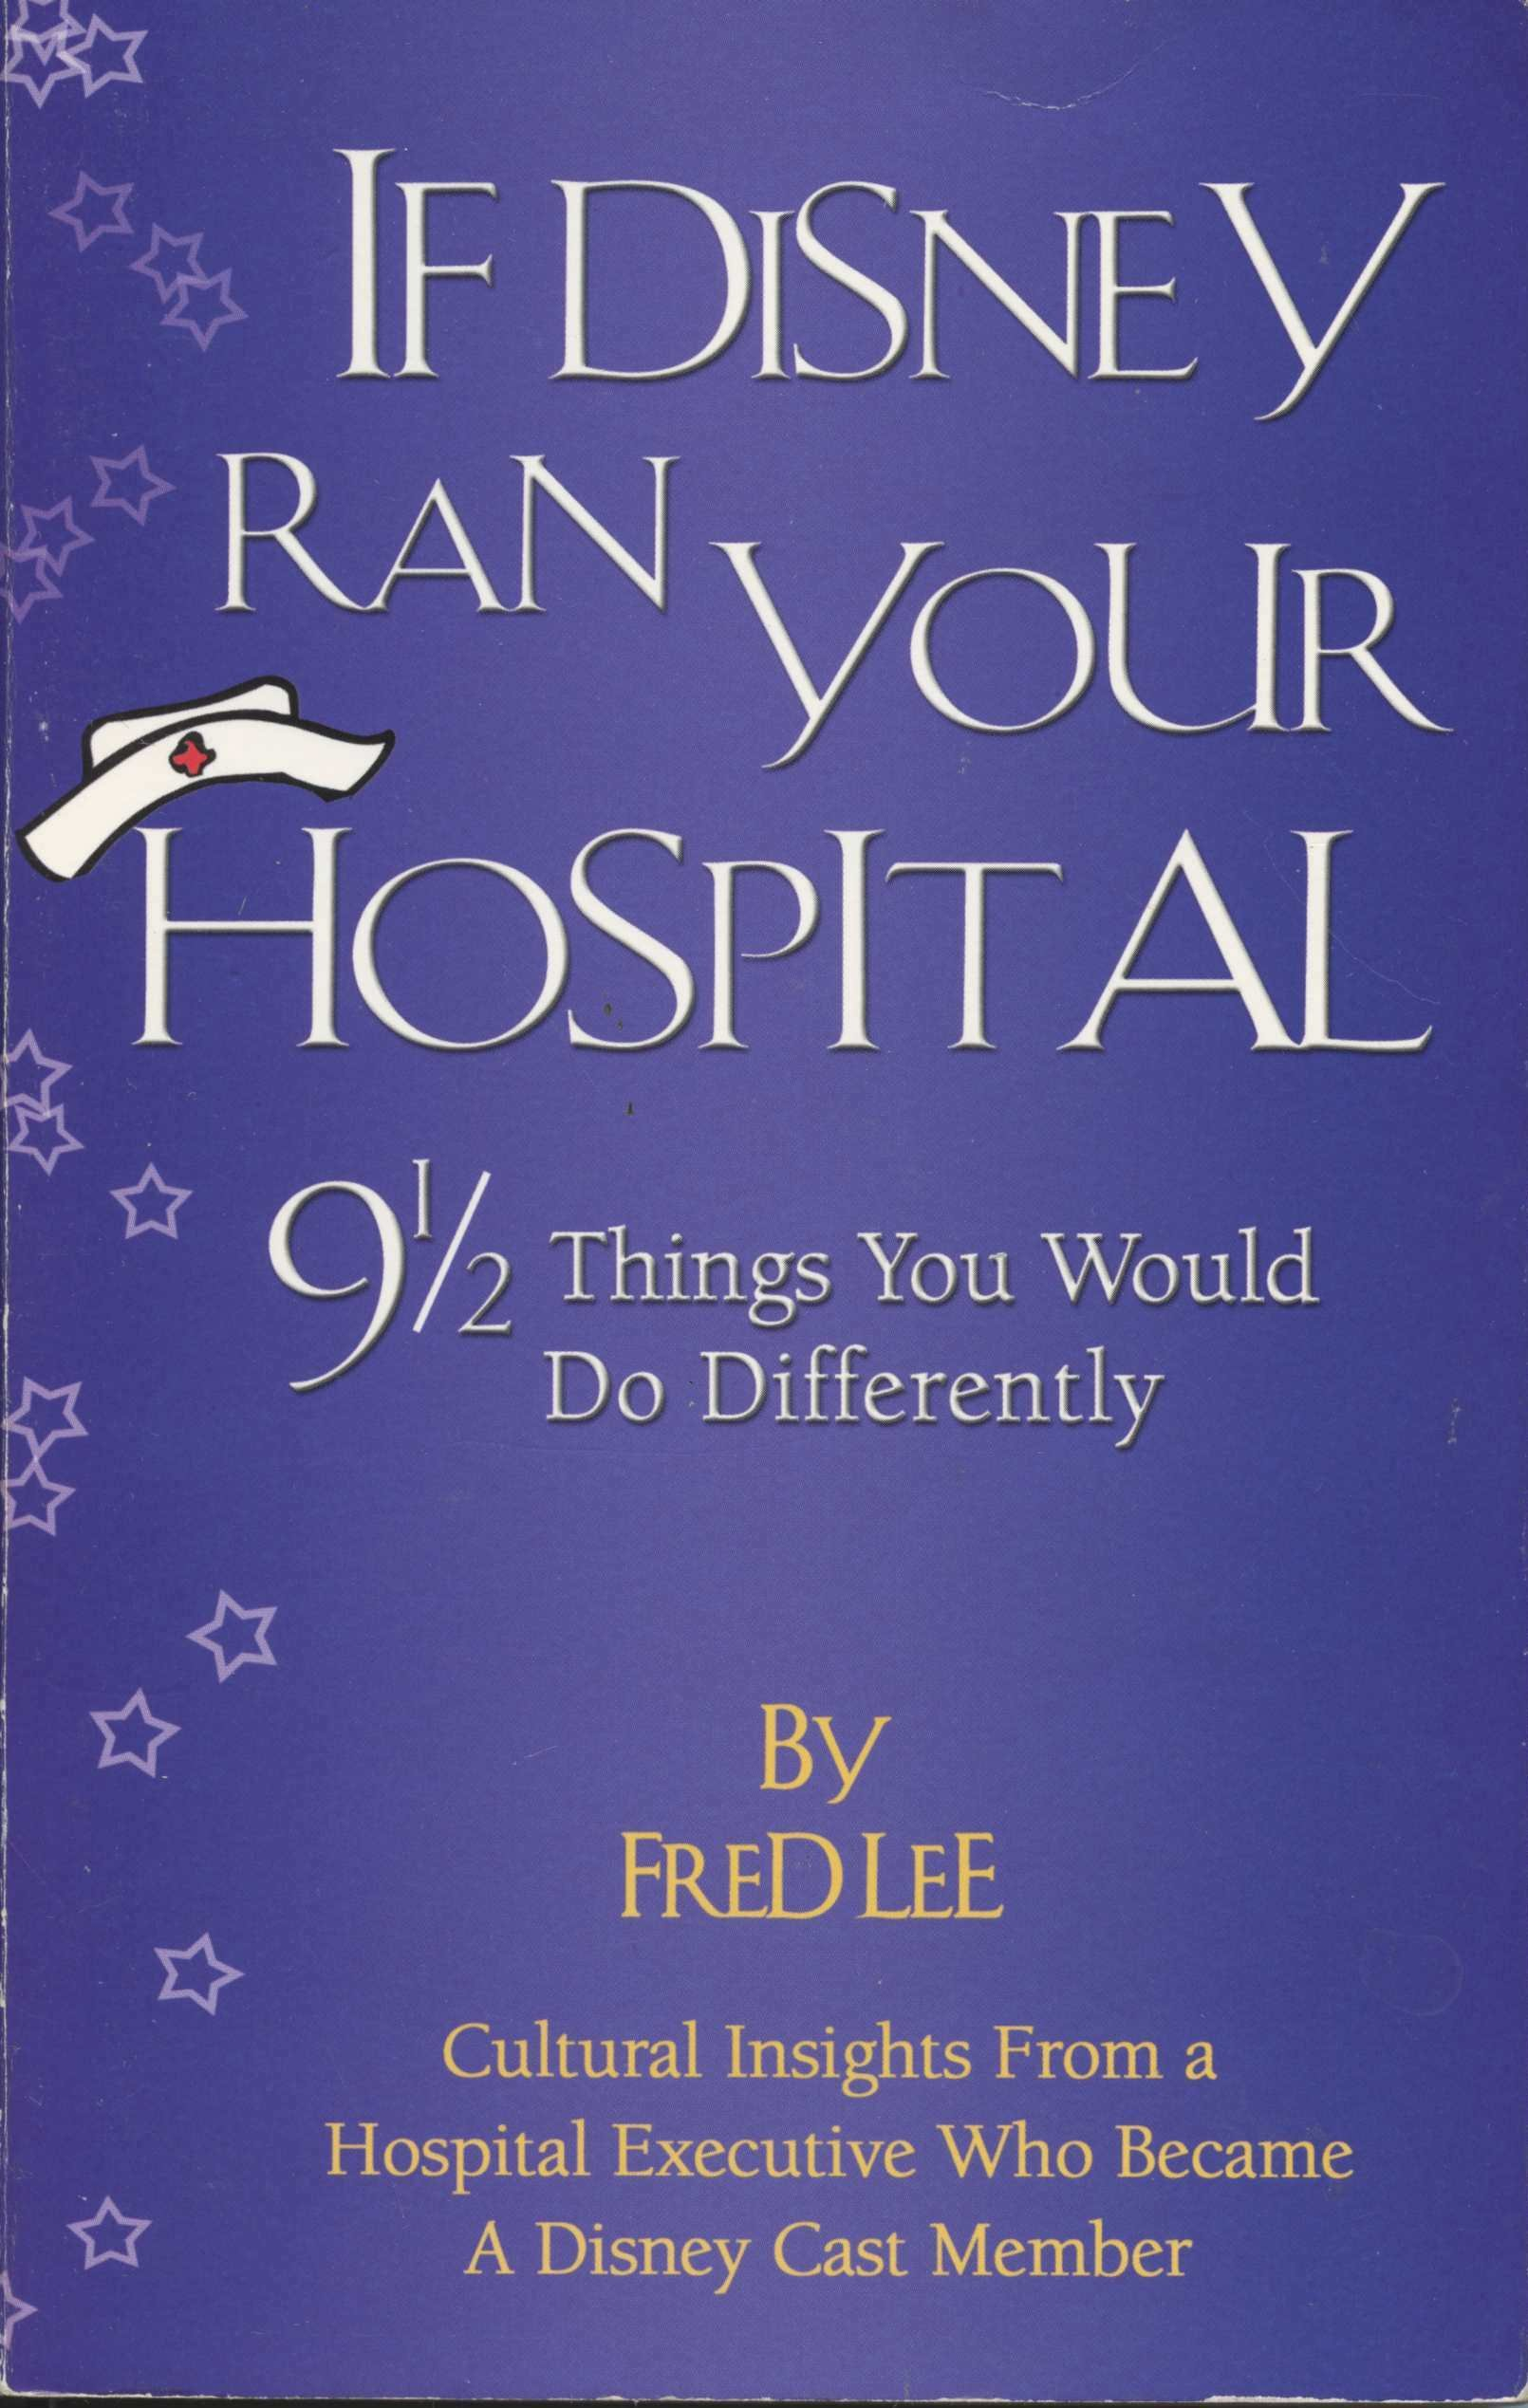 Image OfIf Disney Ran Your Hospital: 9 1/2 Things You Would Do Differently